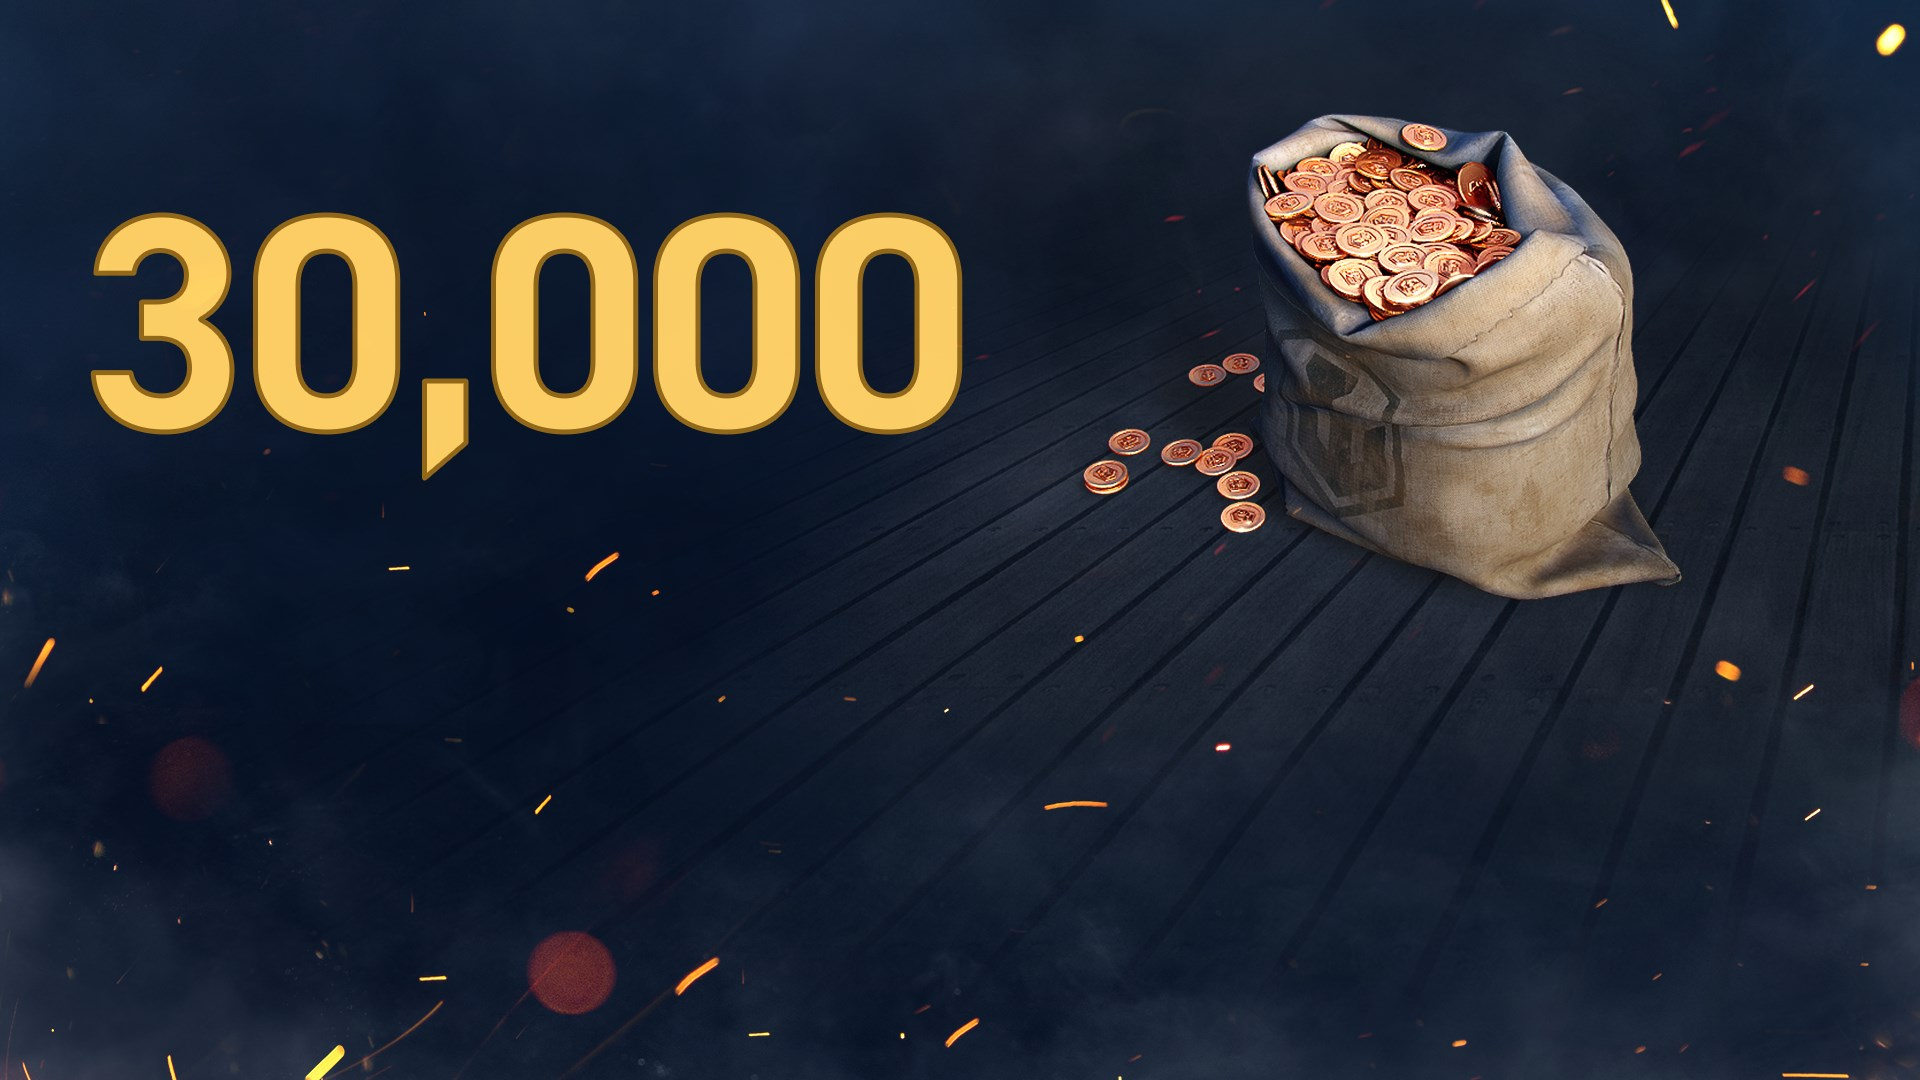 World of Warships: Legends - 30,000 Doubloons